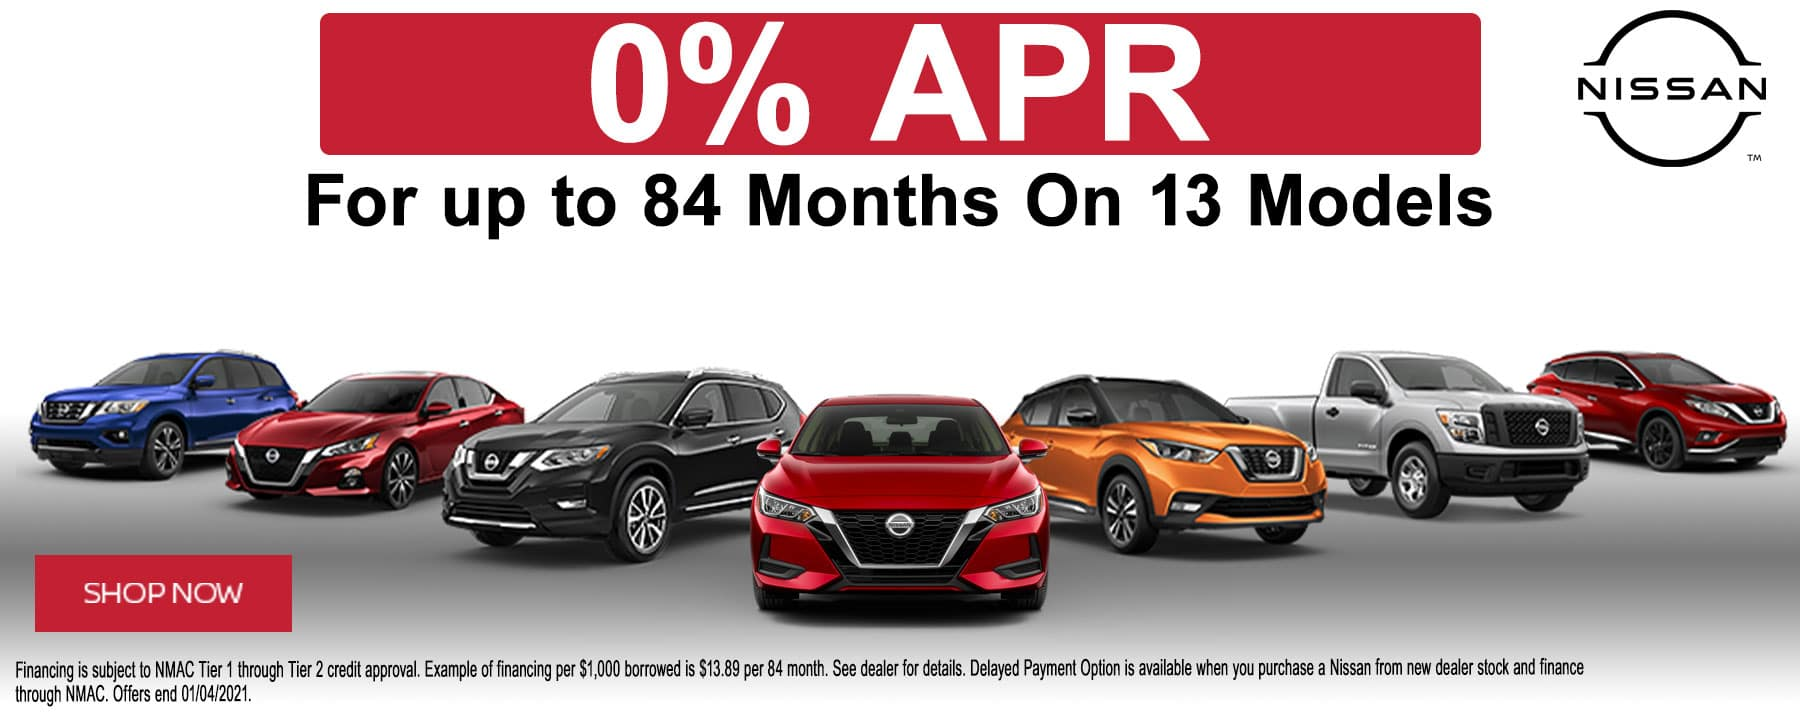 Get Zero Percent APR financing on Select Models